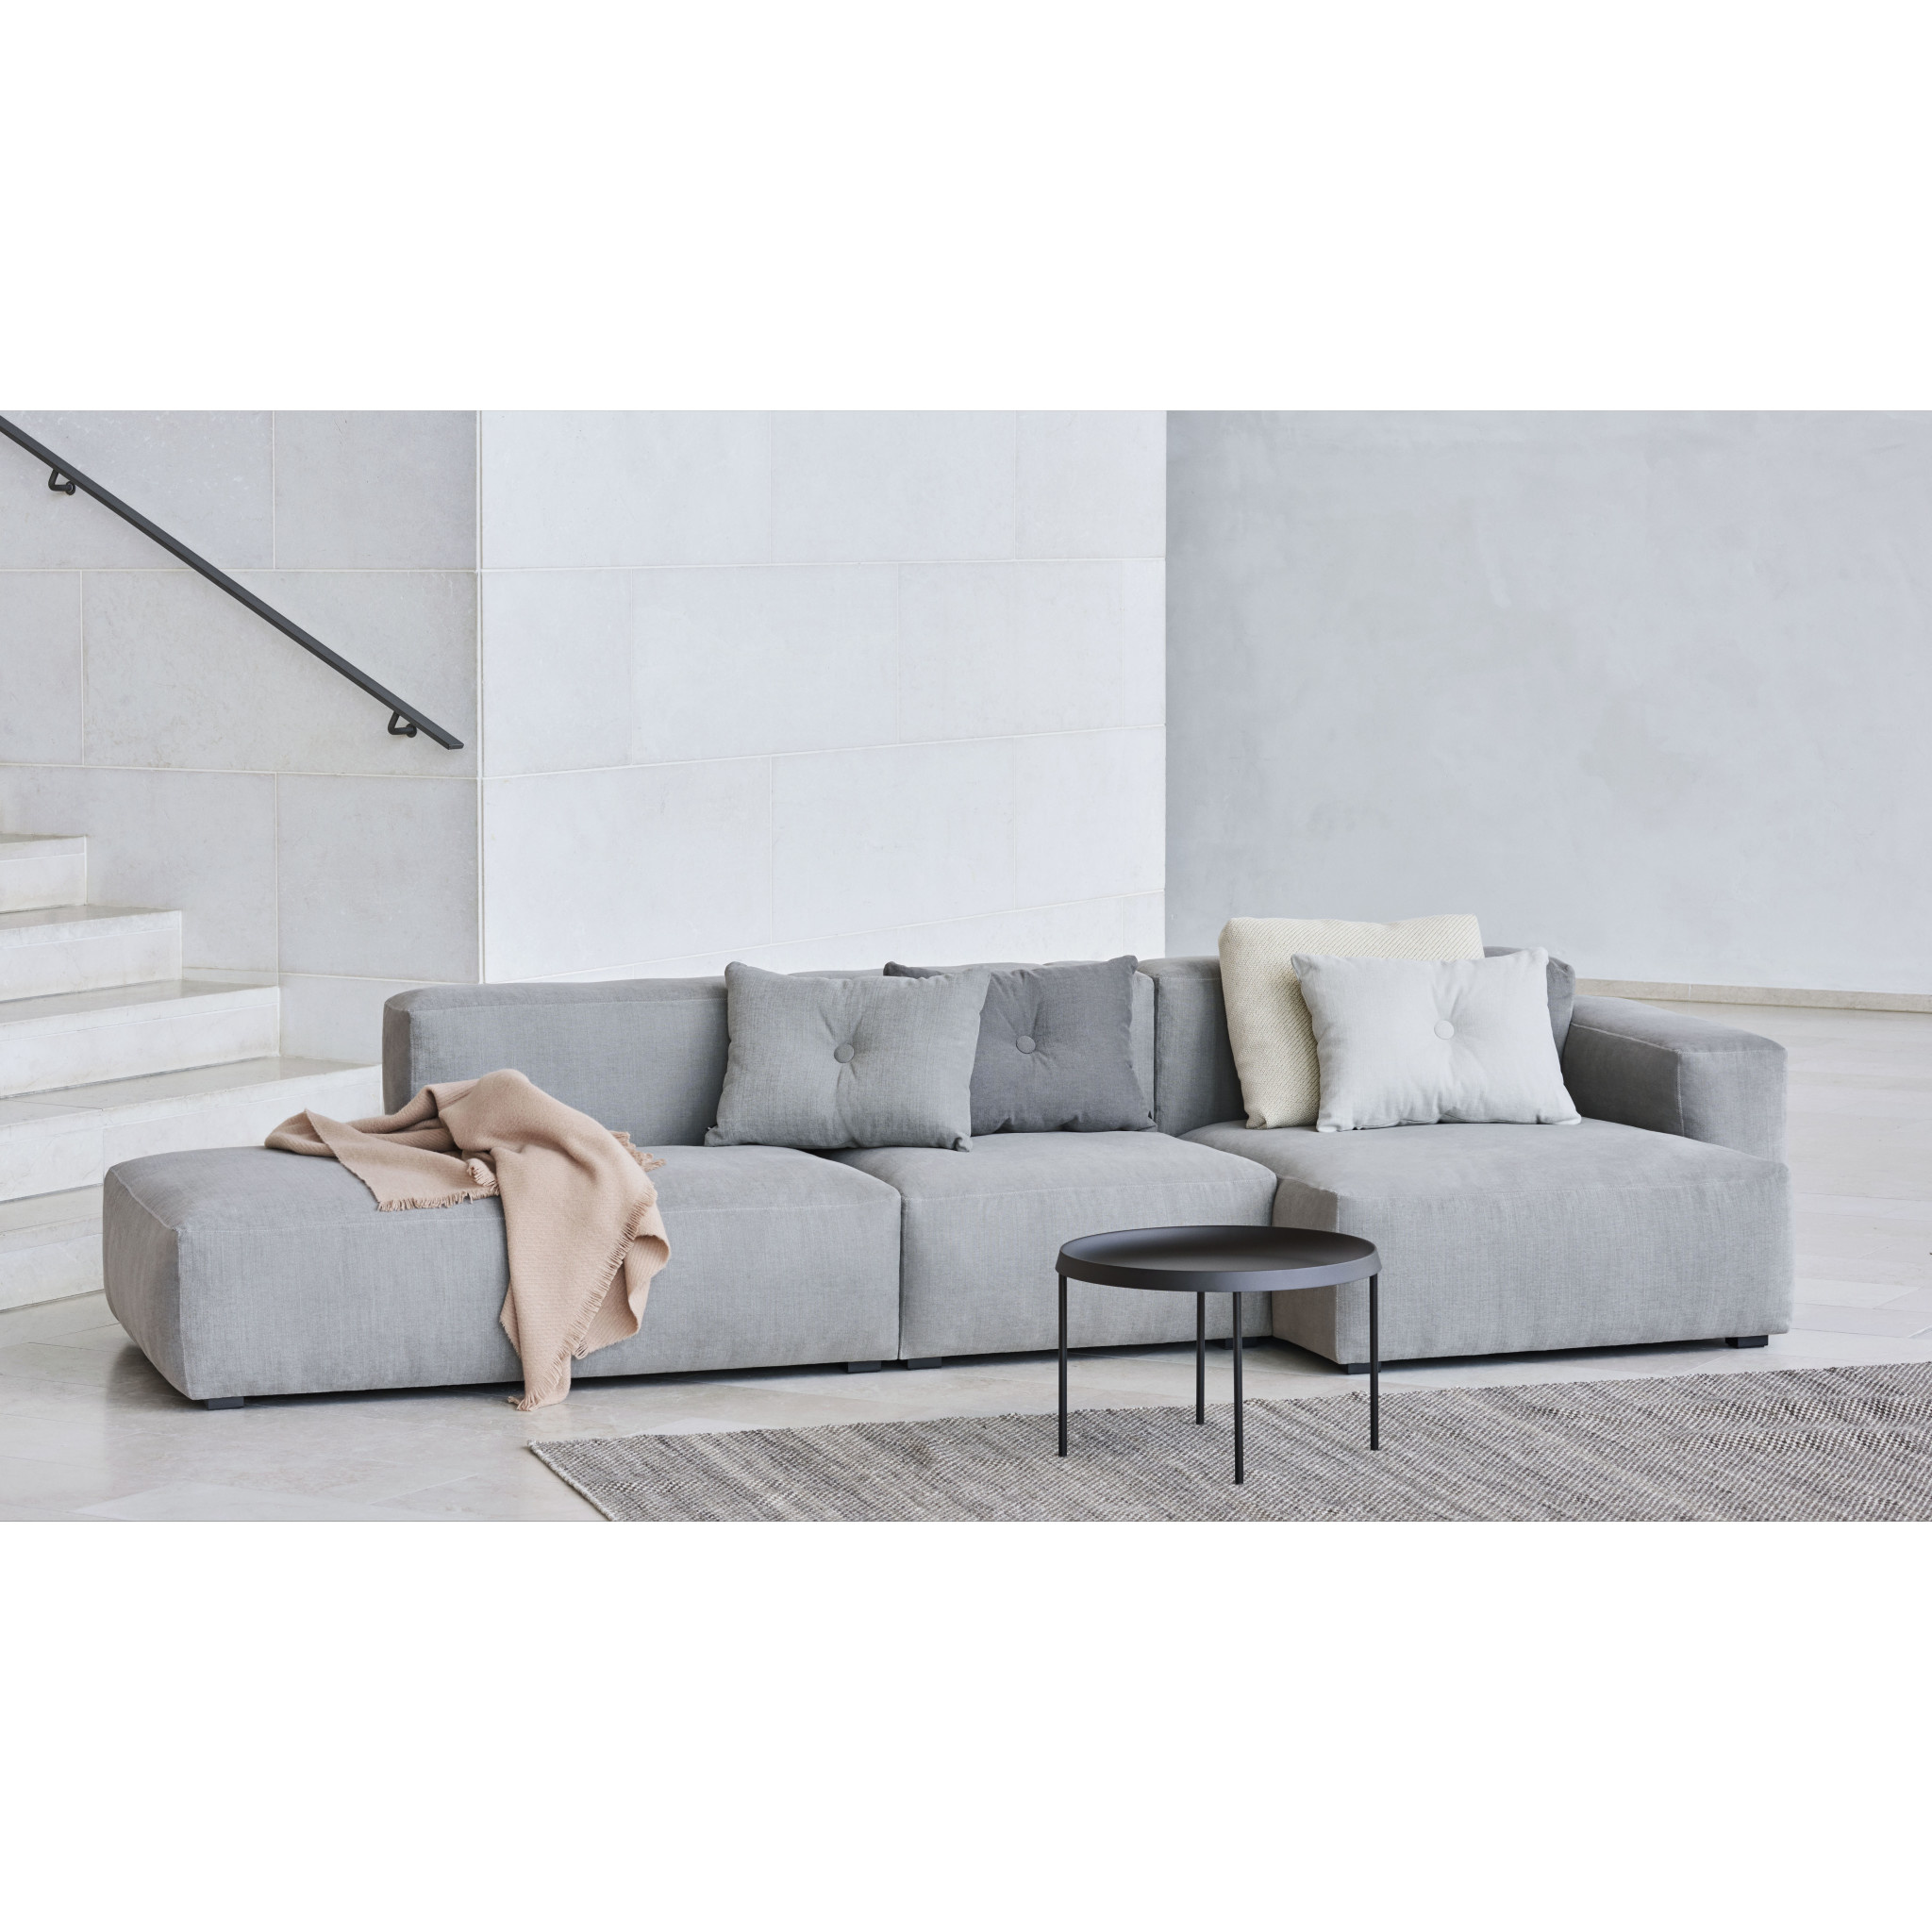 HAY MAGS soft low armrest 3 seater - combination 3